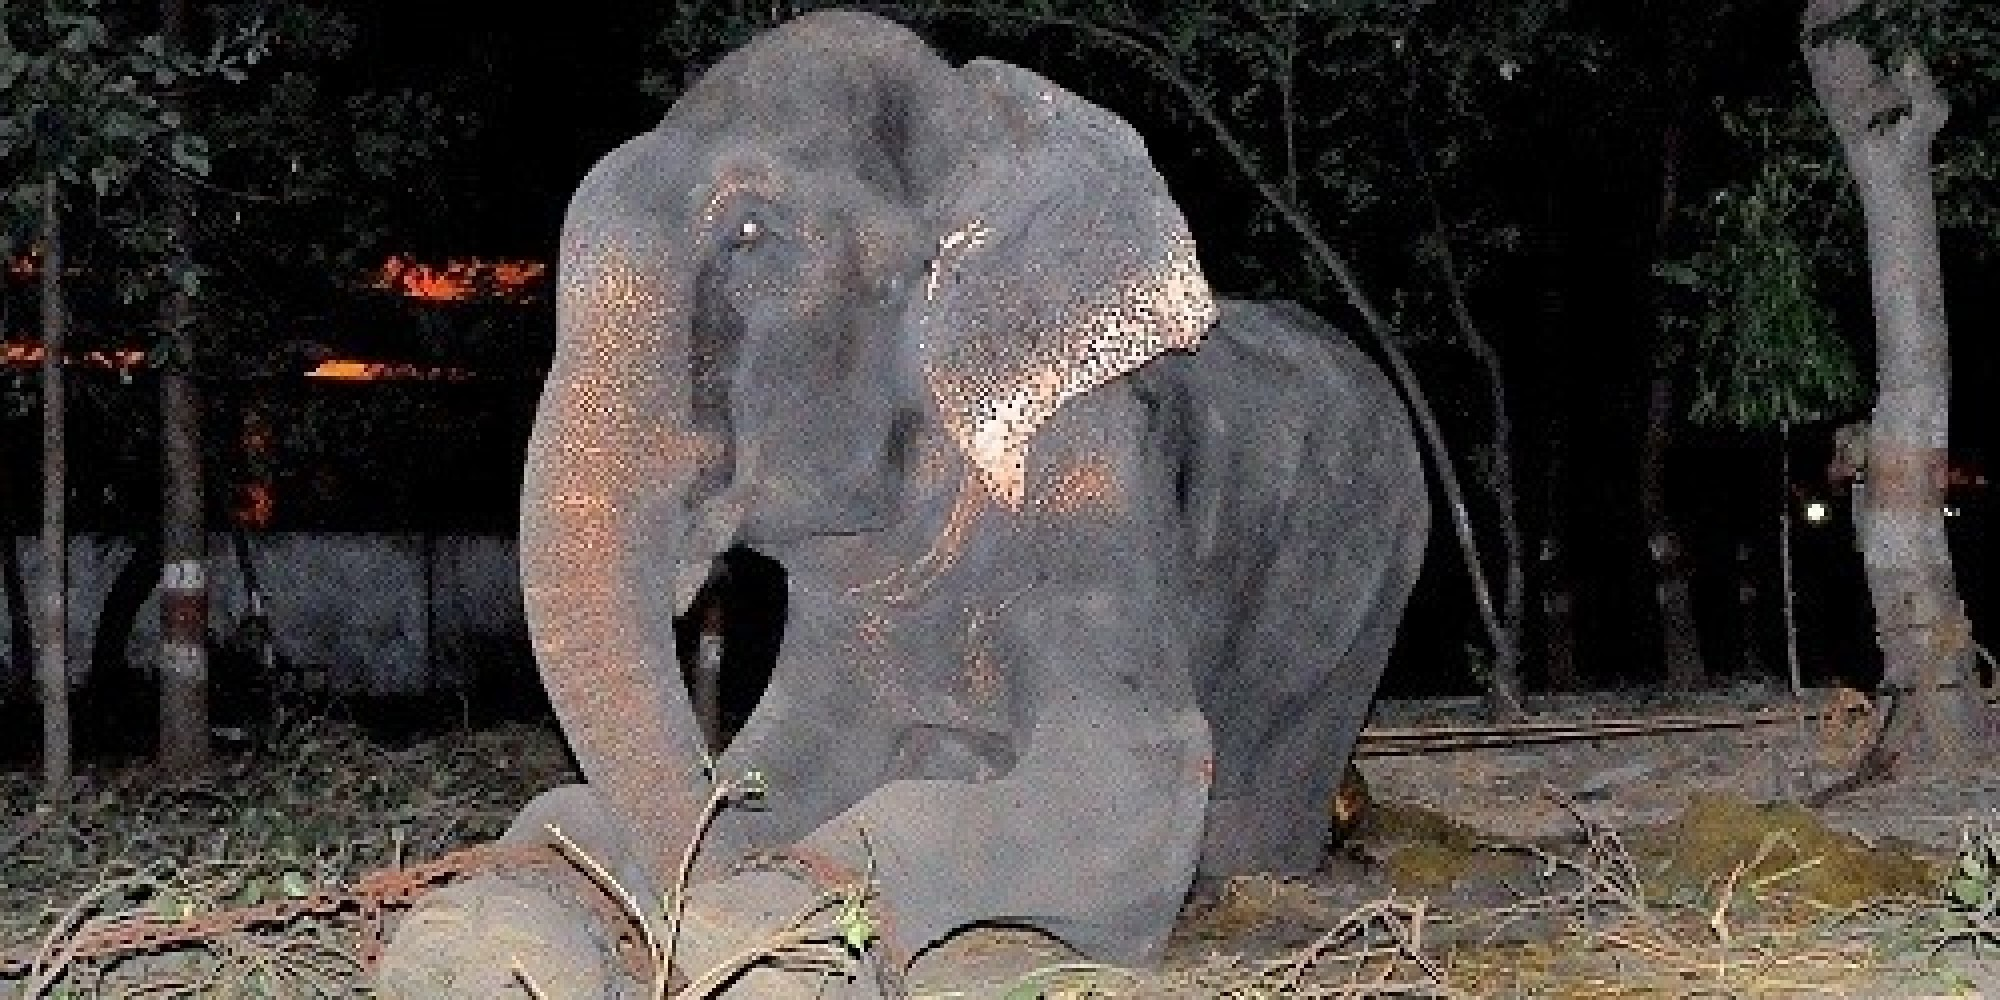 Raju The Elephant Weeps While Being Rescued After 50 Years Of Confinement!